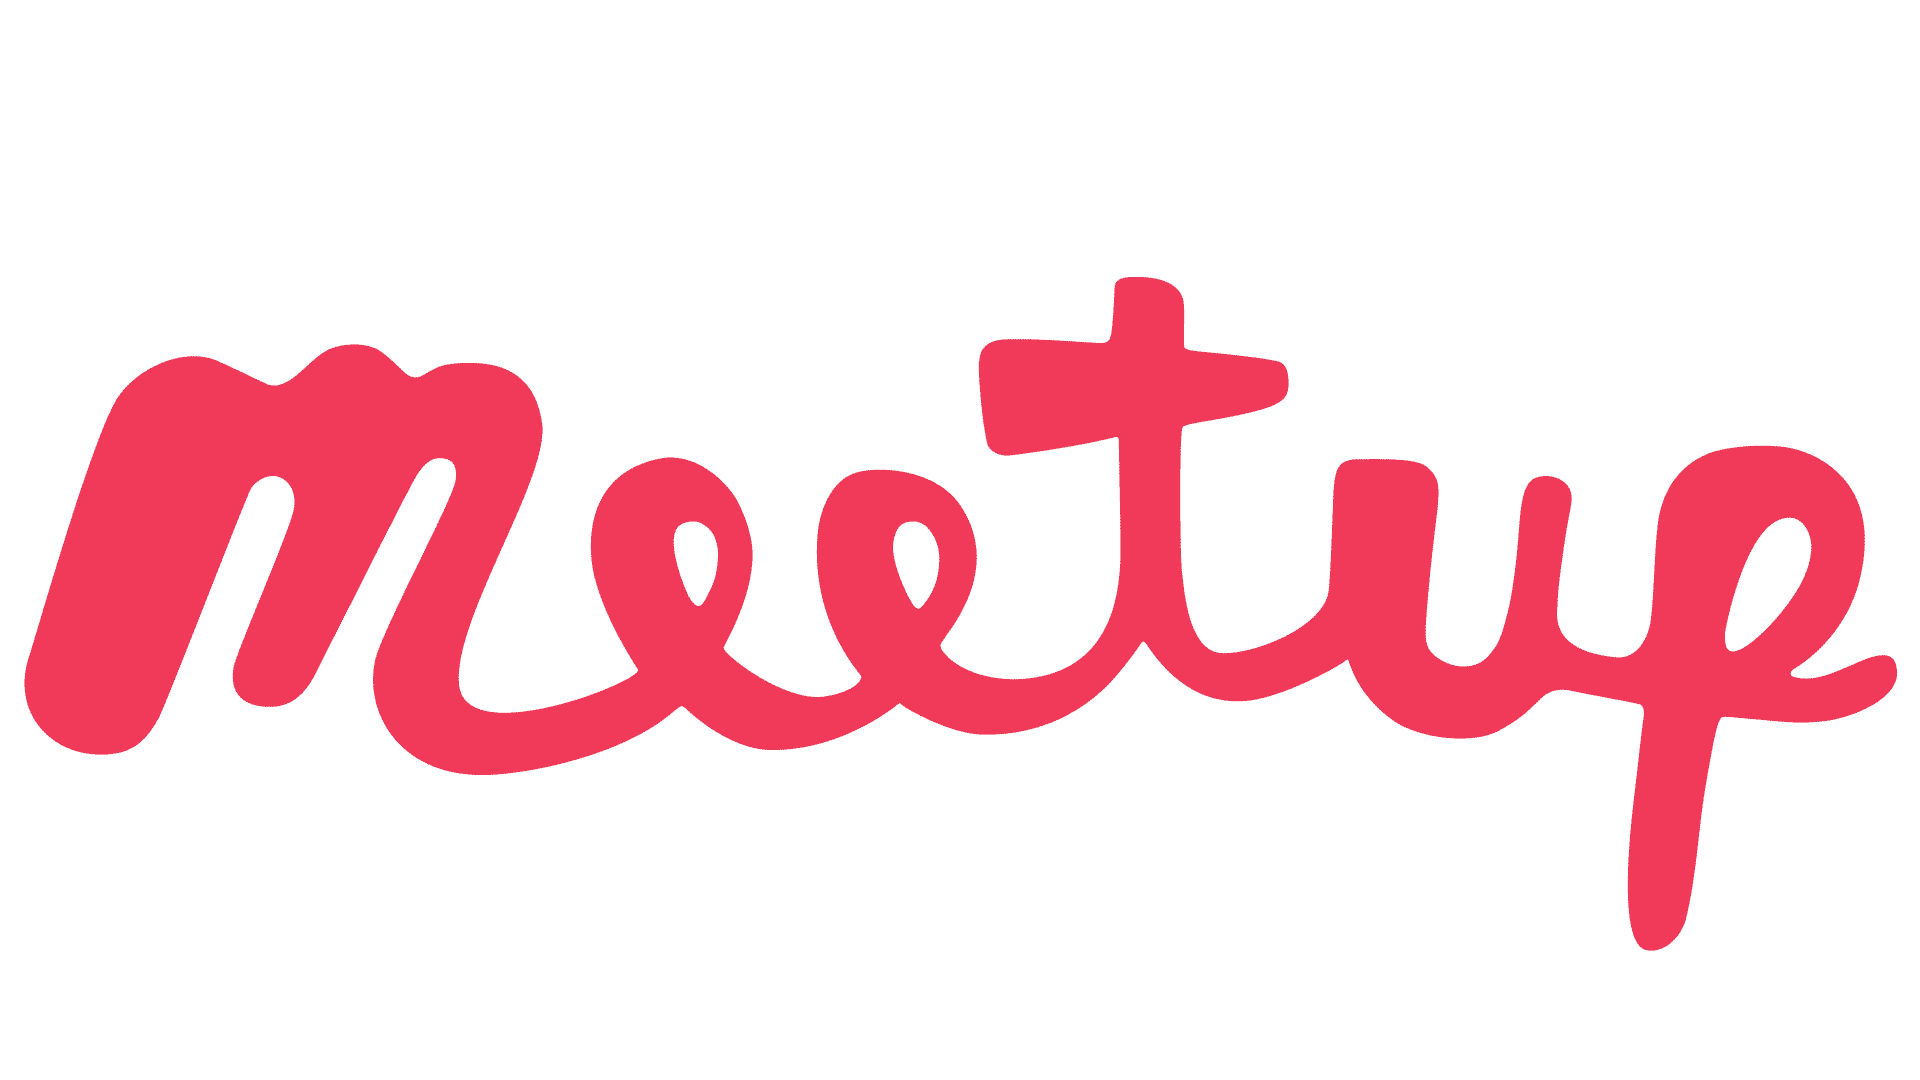 Beazy partners up with Meetup by hosting hundreds of creative events in Berlin - Rent all the gear you need and join the camera sharing community